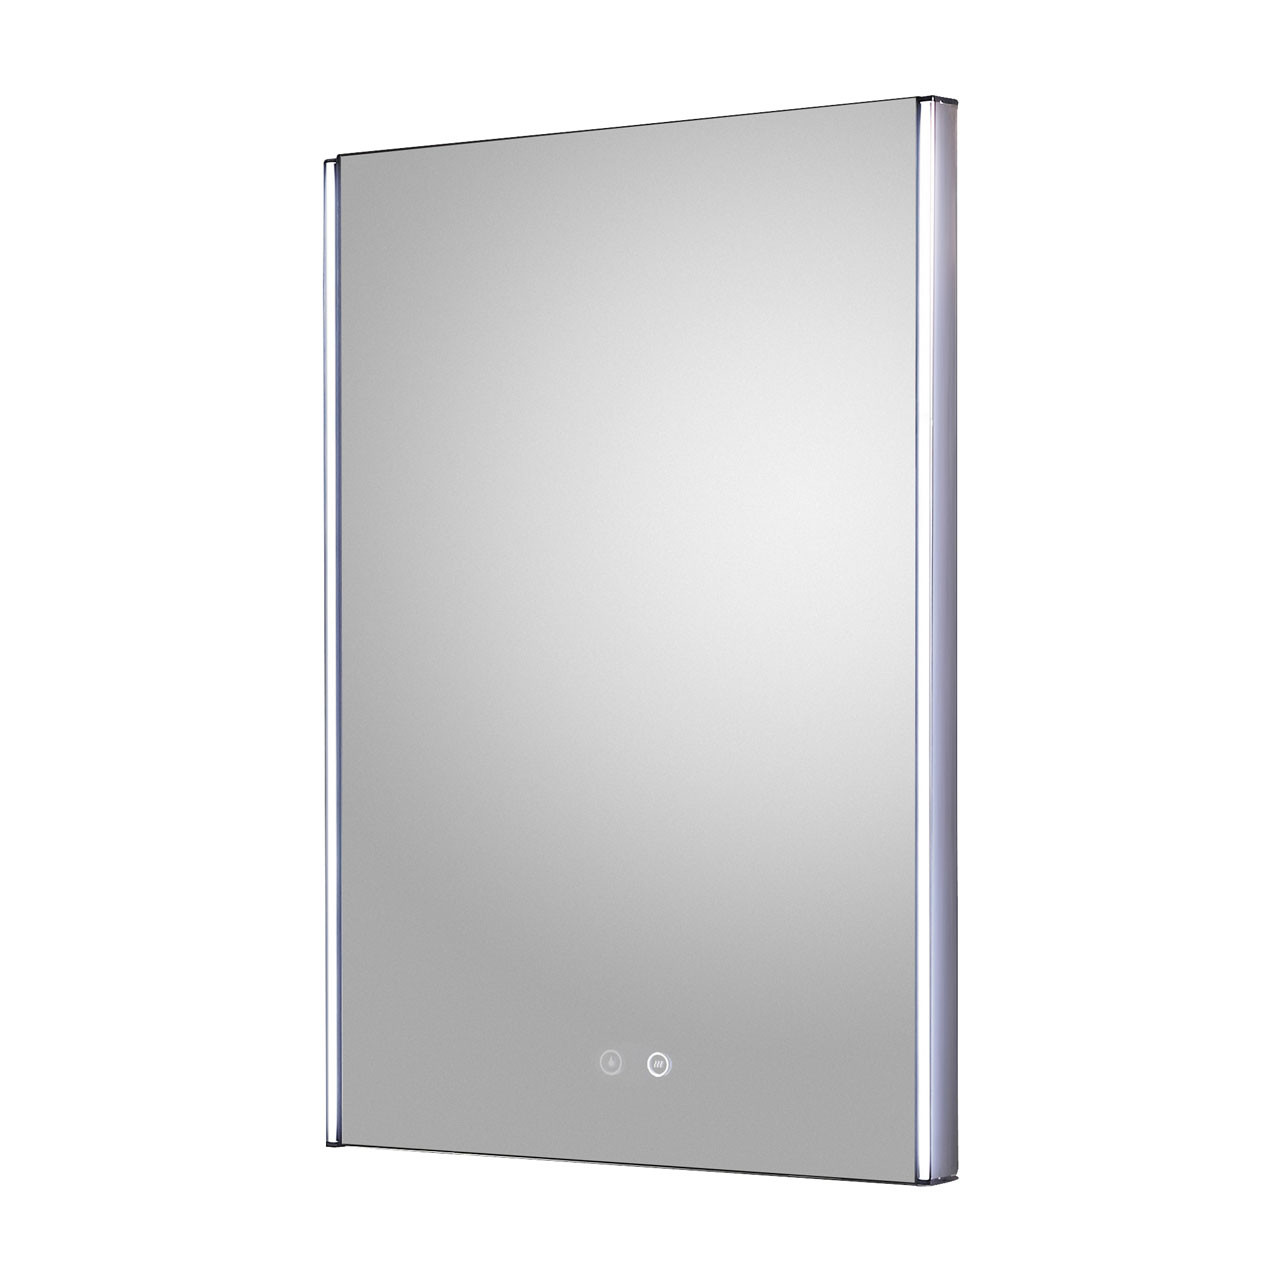 Hudson Reed Reverie 500mm x 700mm LED Mirror - LQ089